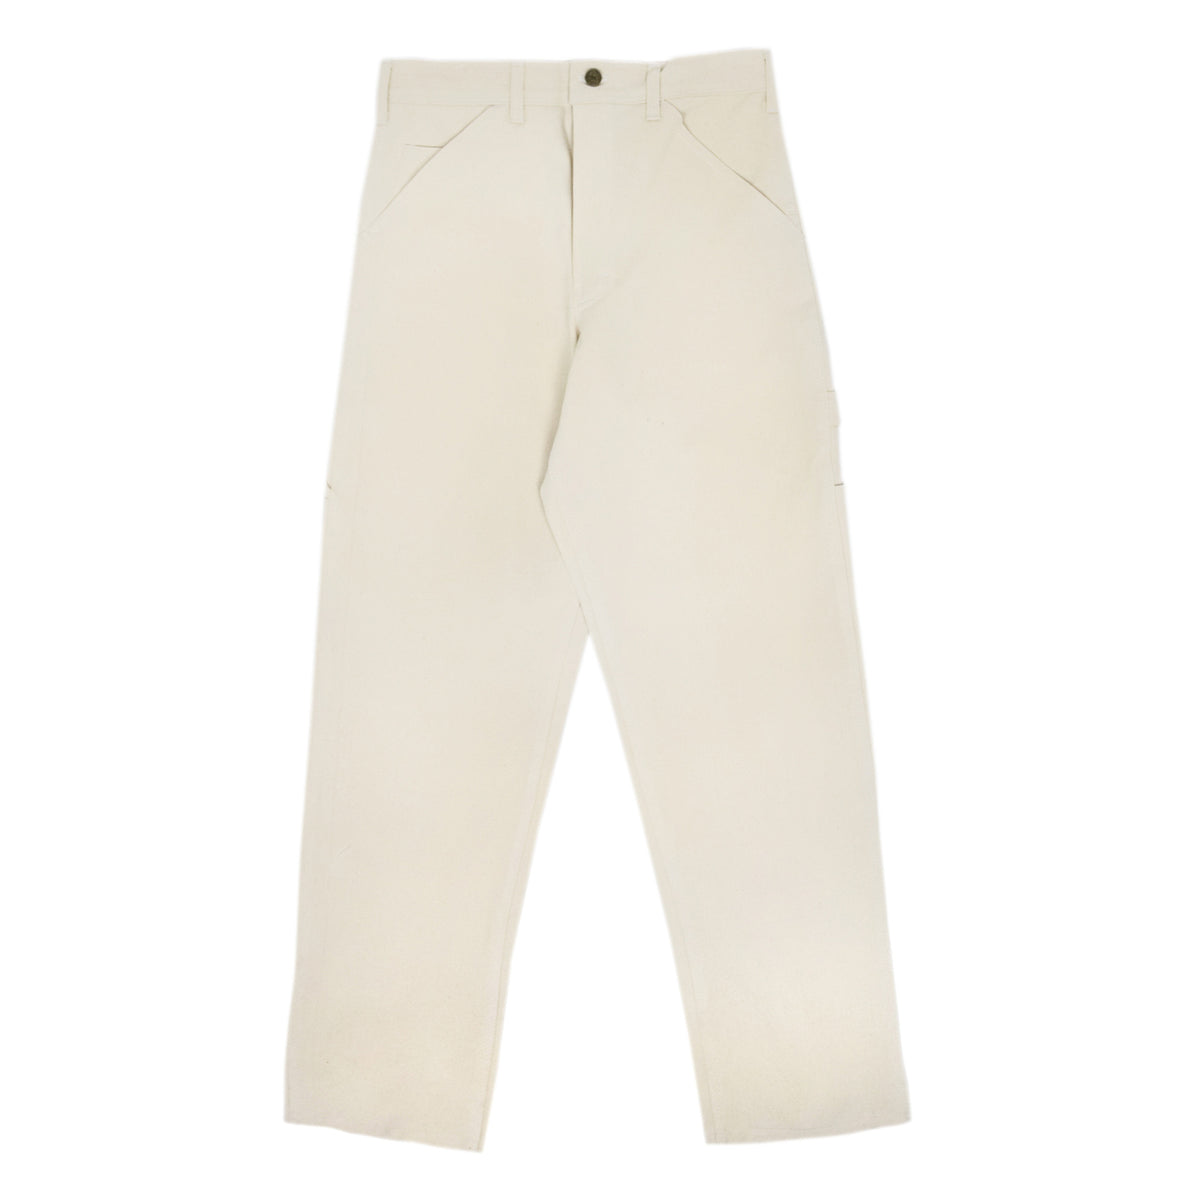 Stan Ray OG Painter Pant Natural Drill Made in USA front